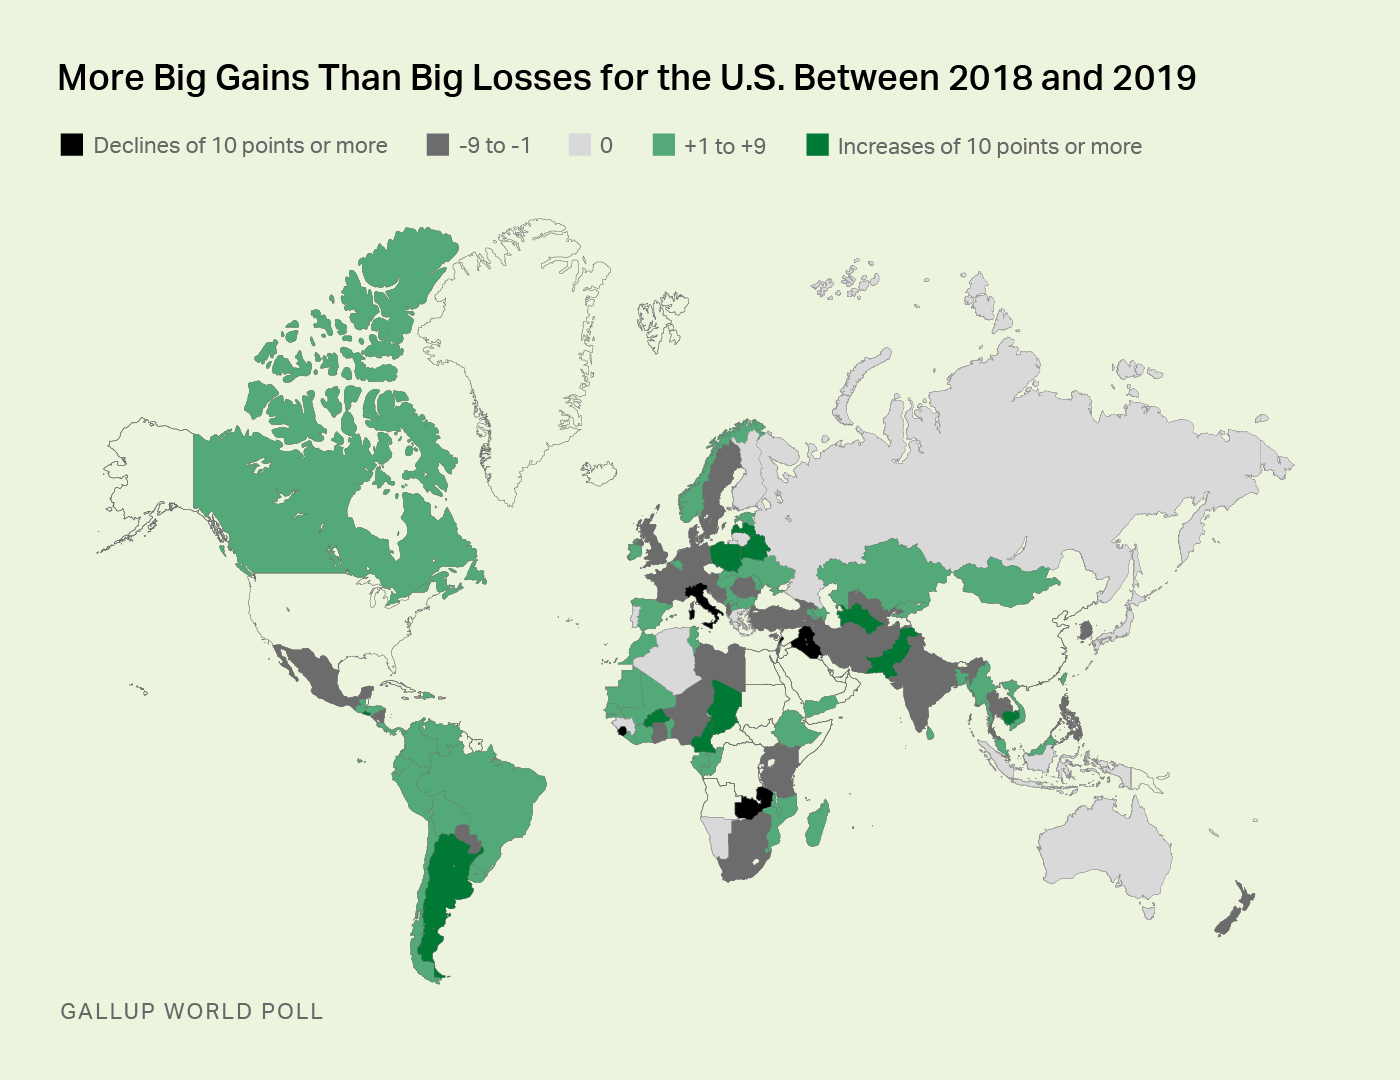 Map showing countries and their losing or gaining of public favor compares to the previous year.